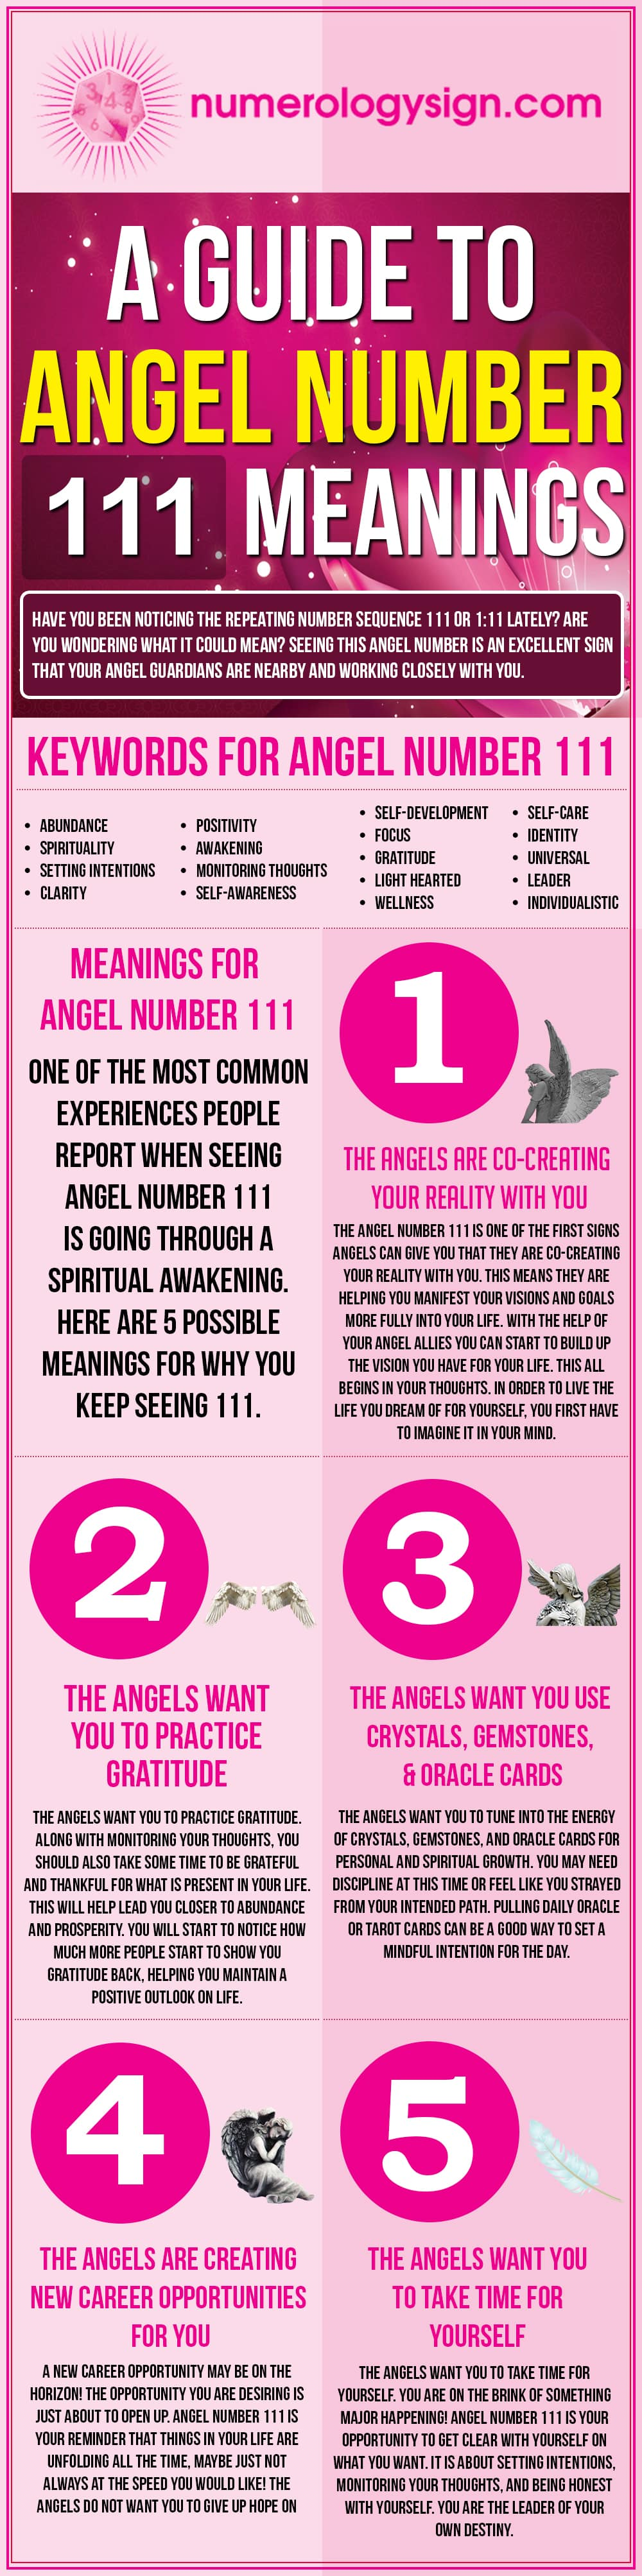 Angel Number 111 Meanings Infographic